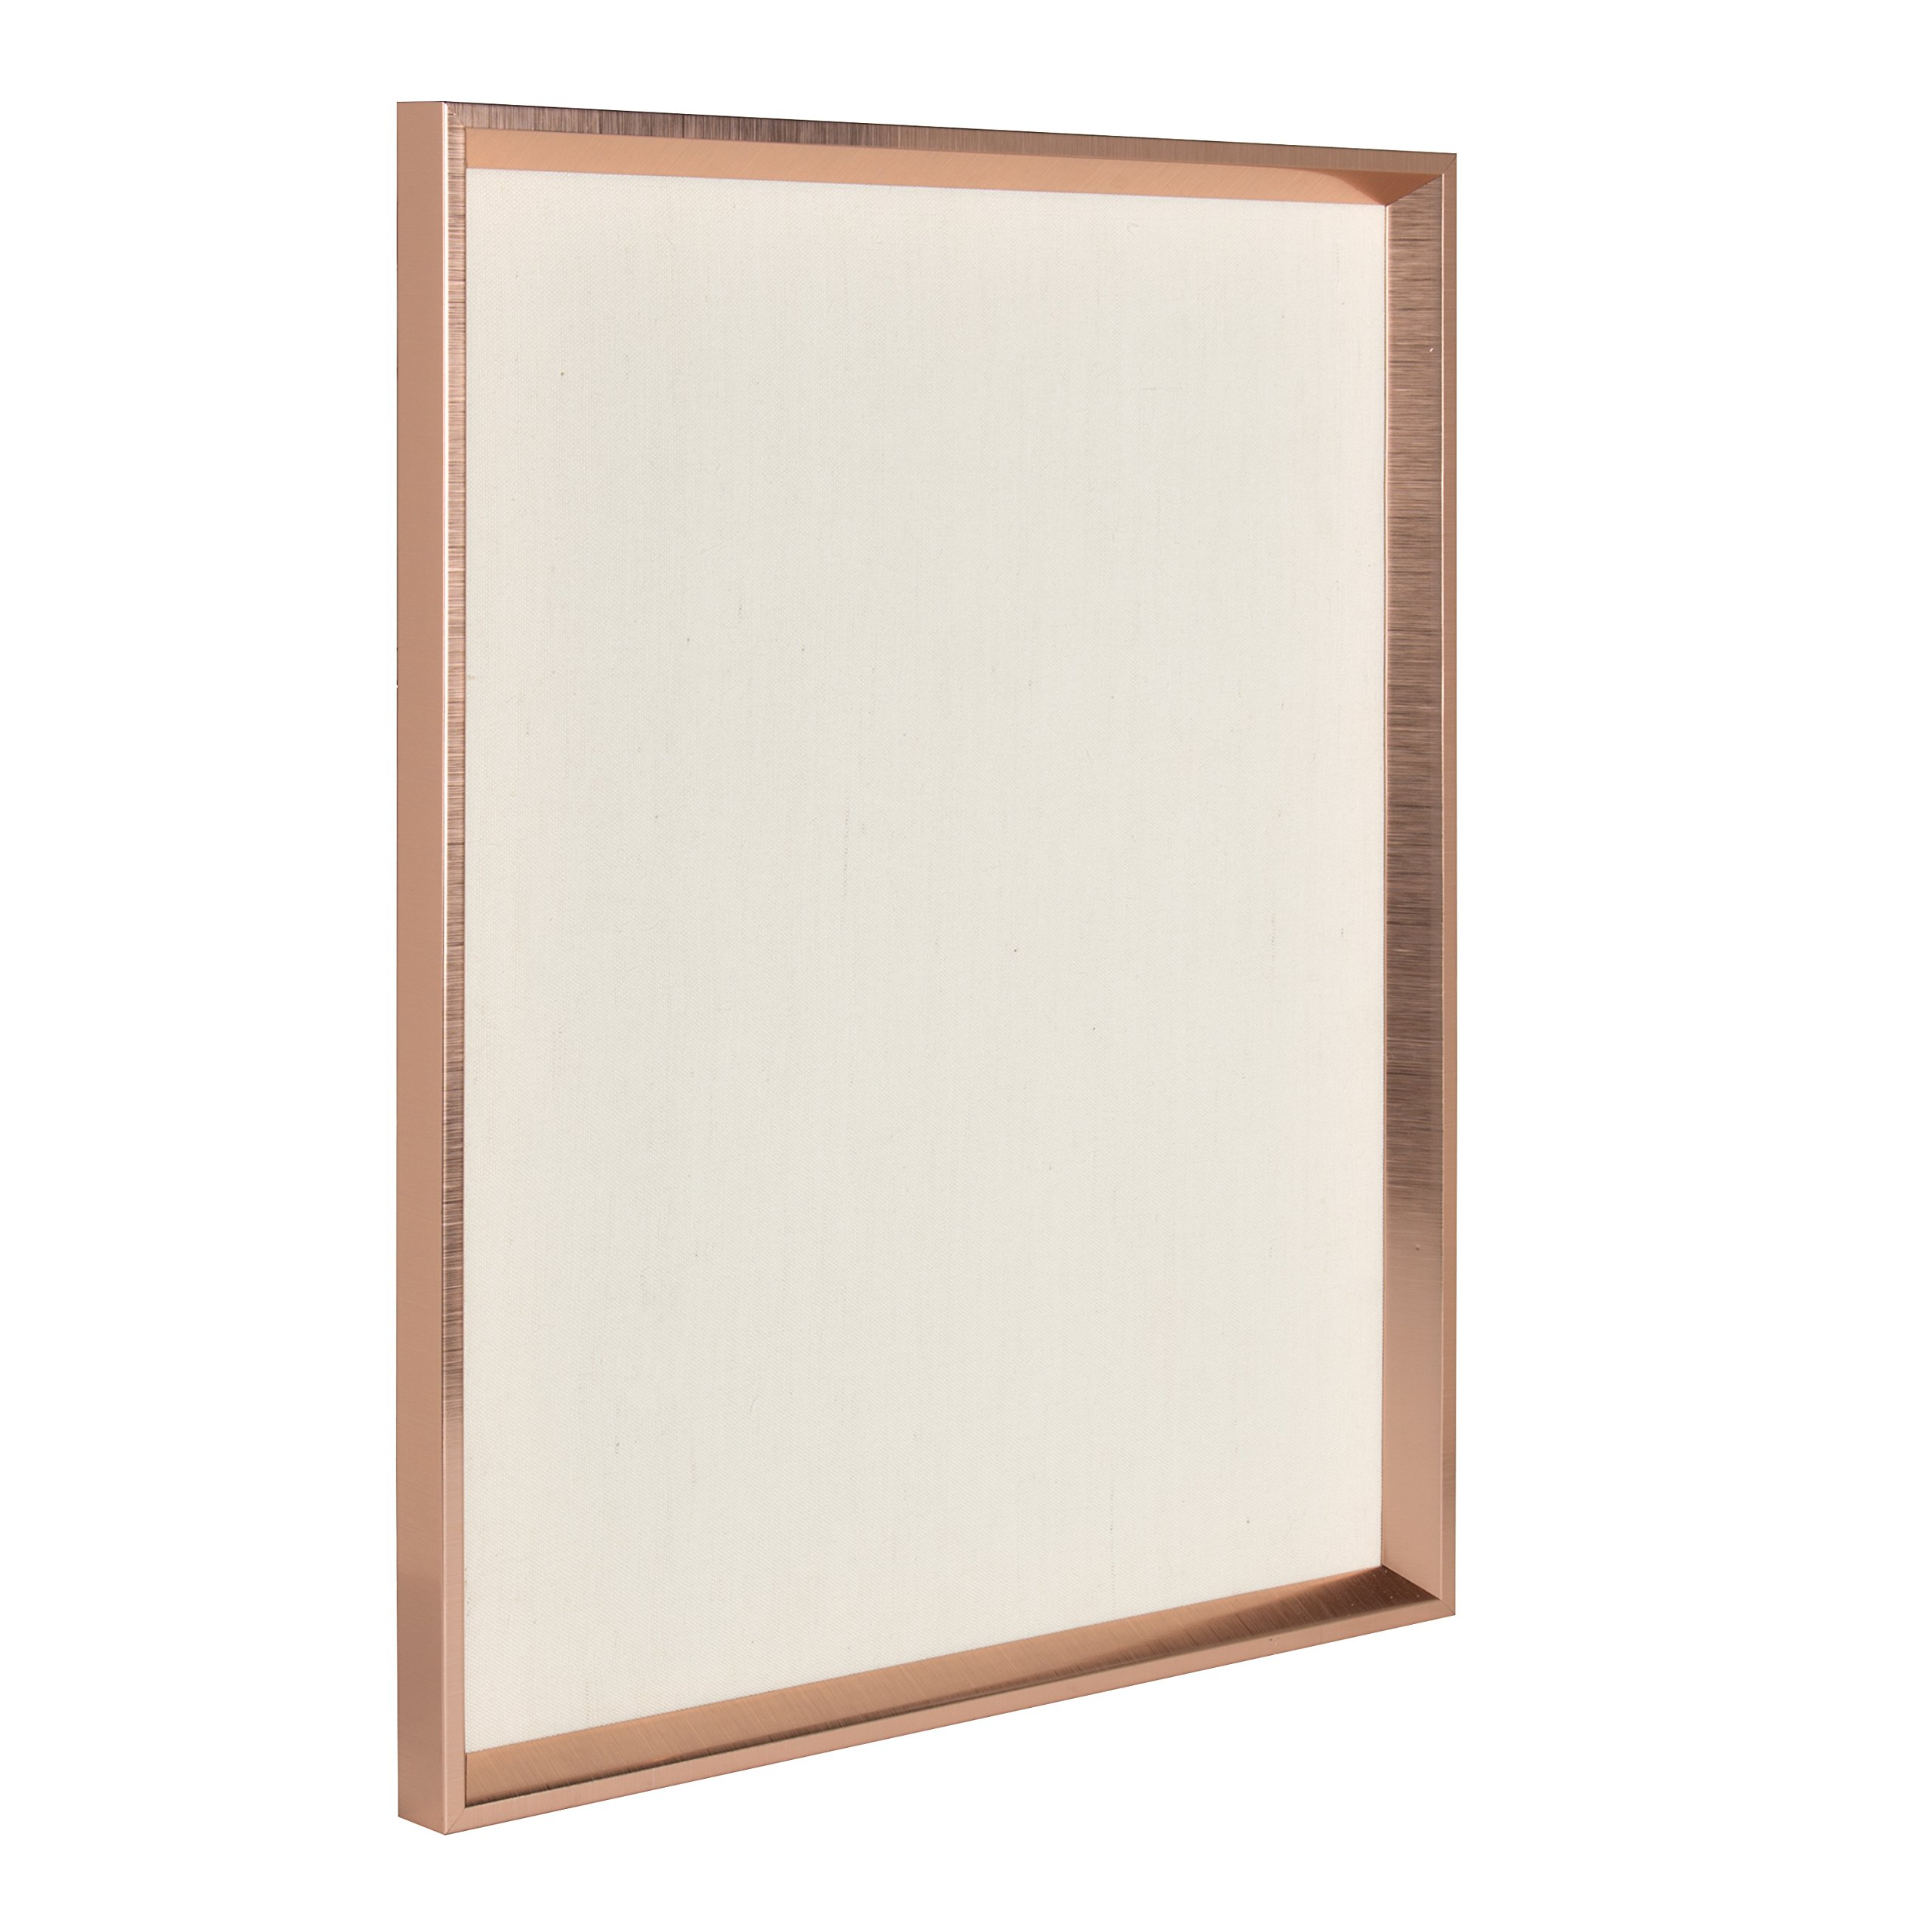 Kate and Laurel Calter Framed Linen Fabric Pinboard, 21.5x27.5, Rose Gold